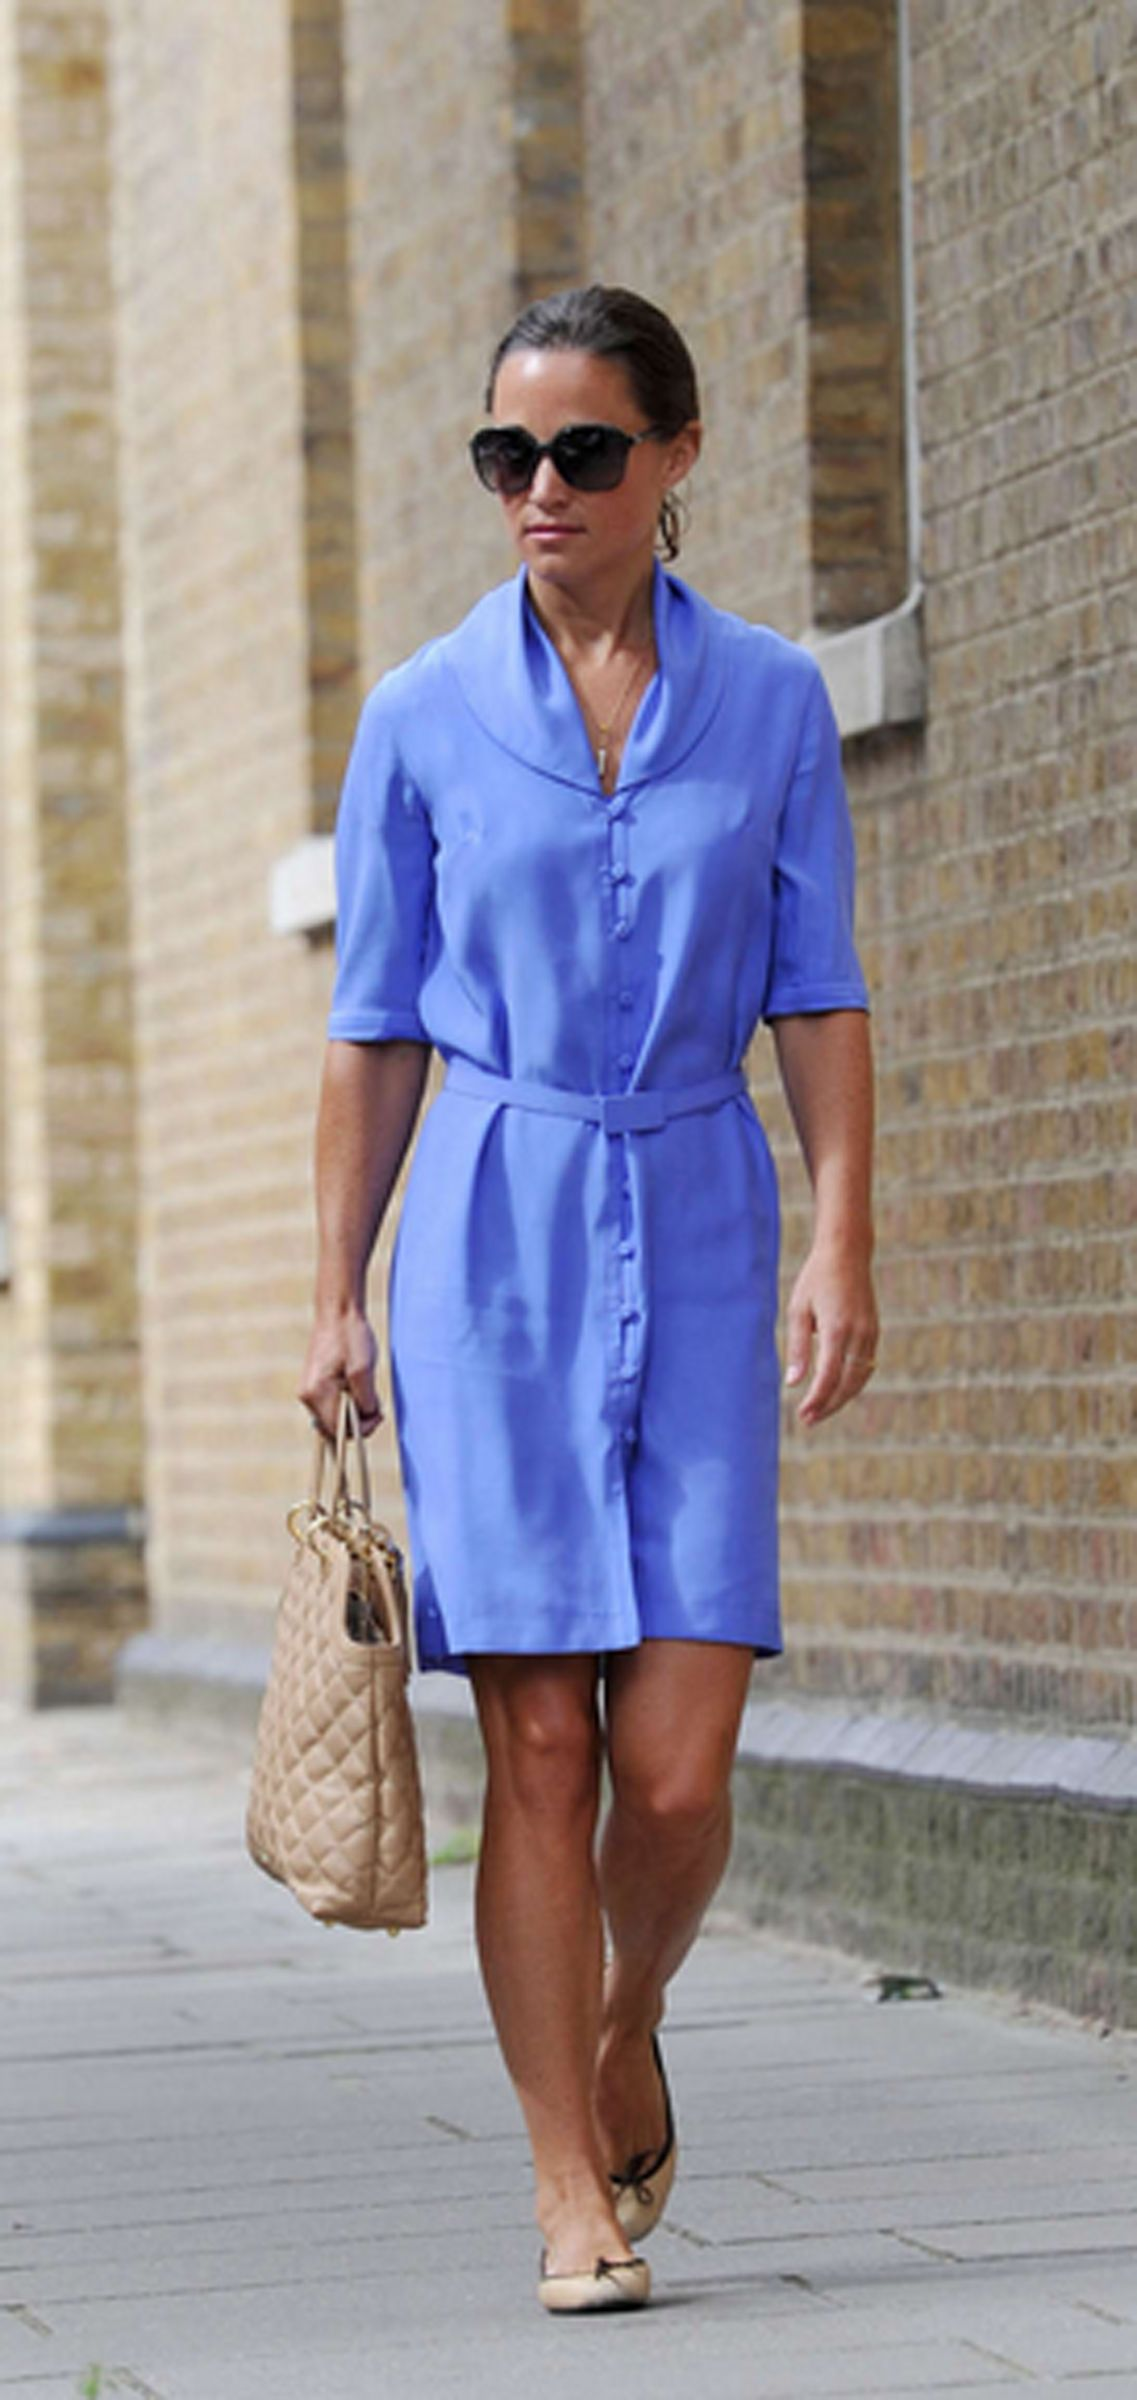 b9eeb16ded95 Pippa Middleton wearing her French Sole India Nude Leather ballet flats  around London.